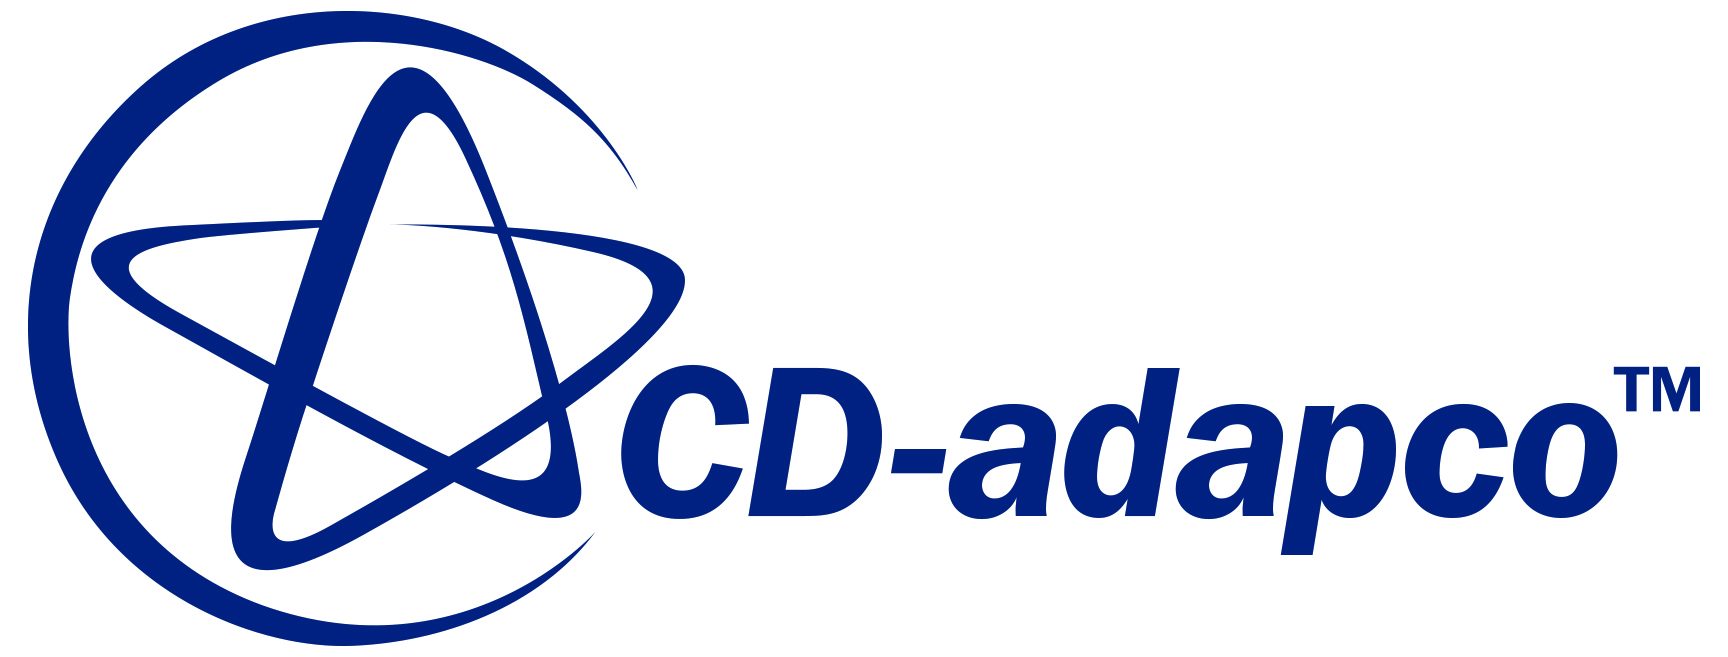 CD-adapco logo